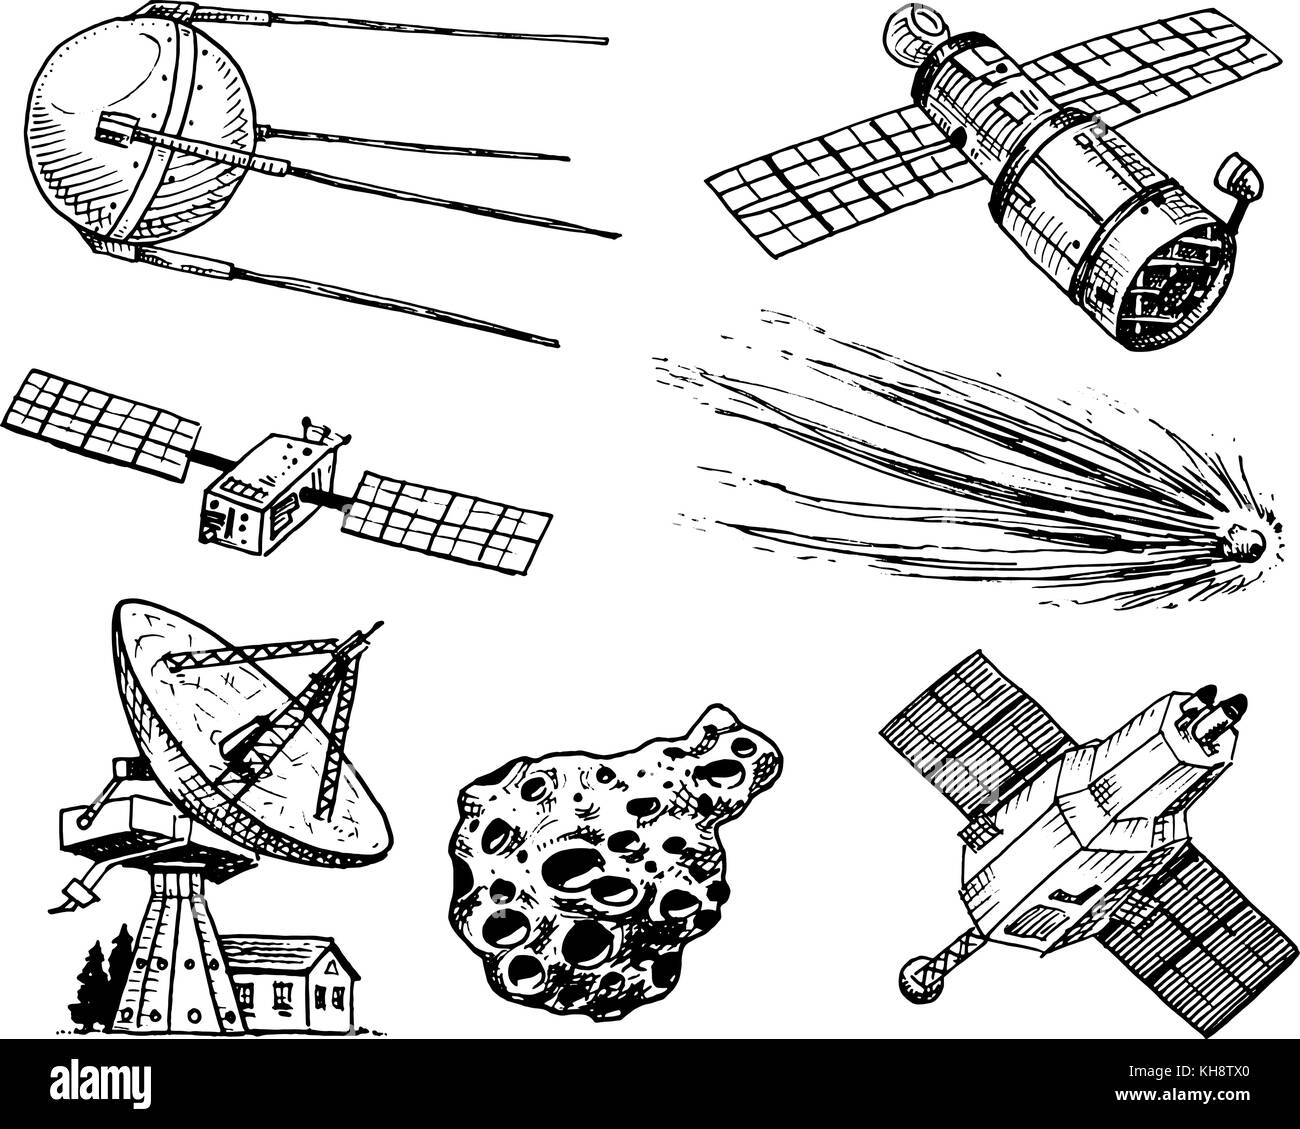 Space Shuttle Radio Telescope And Comet Asteroid Meteorite Diagram Astronaut Exploration Engraved Hand Drawn In Old Sketch Vintage Style For Label Flying